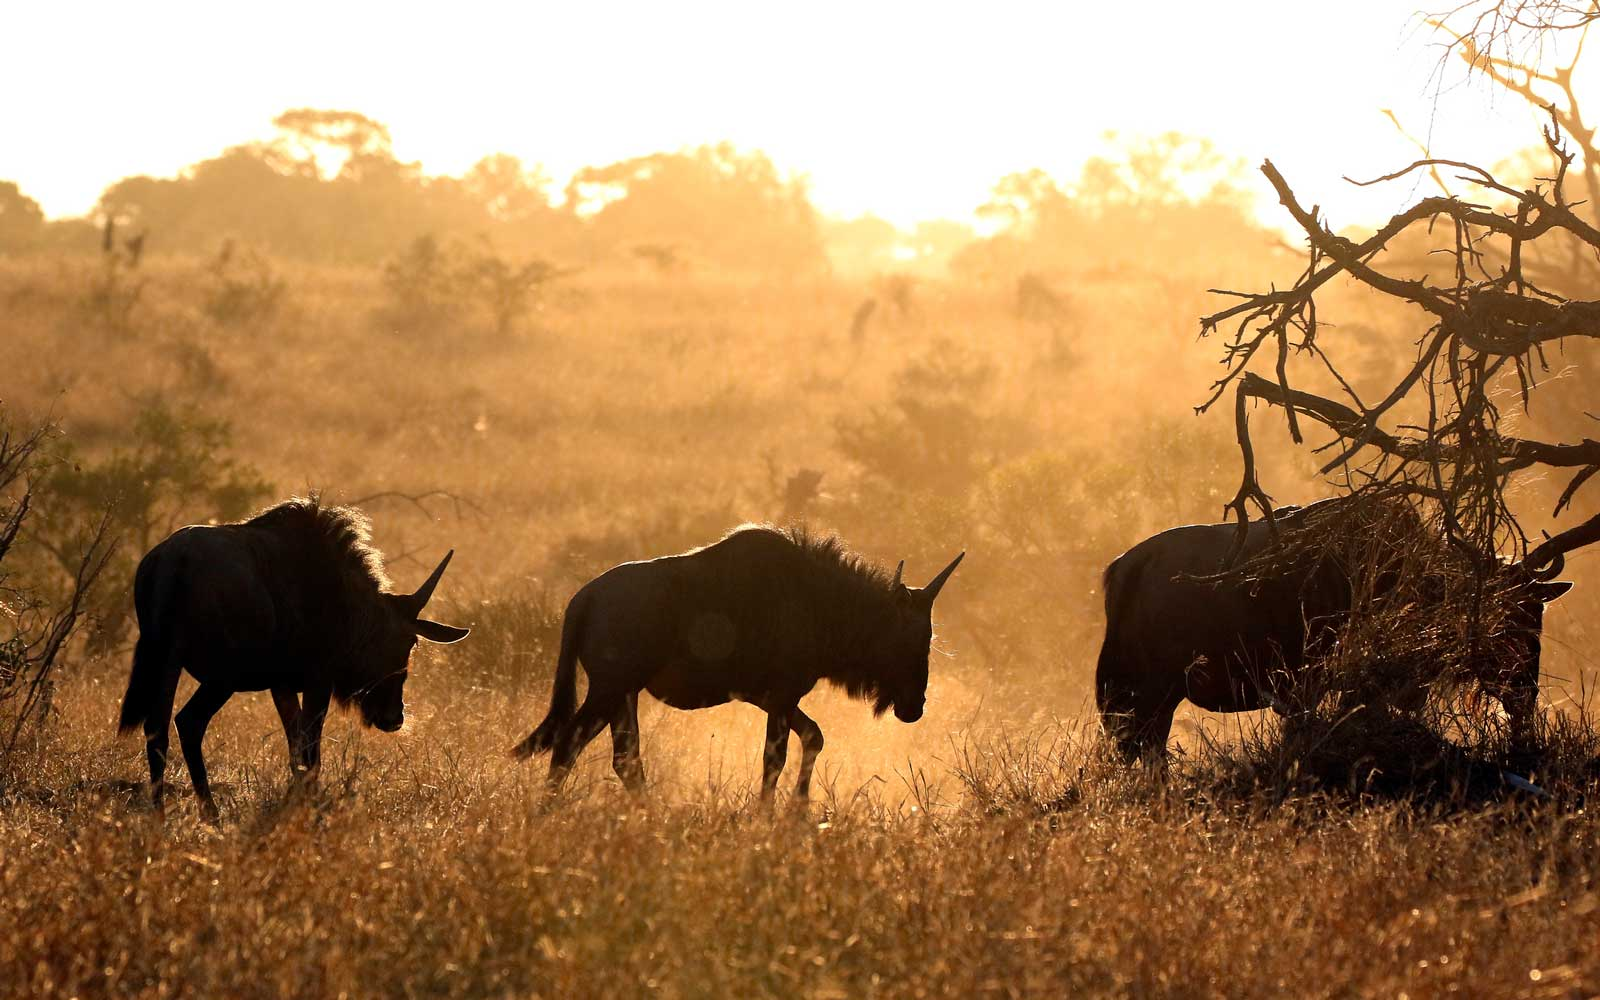 Wildebeasts in Kruger National Park